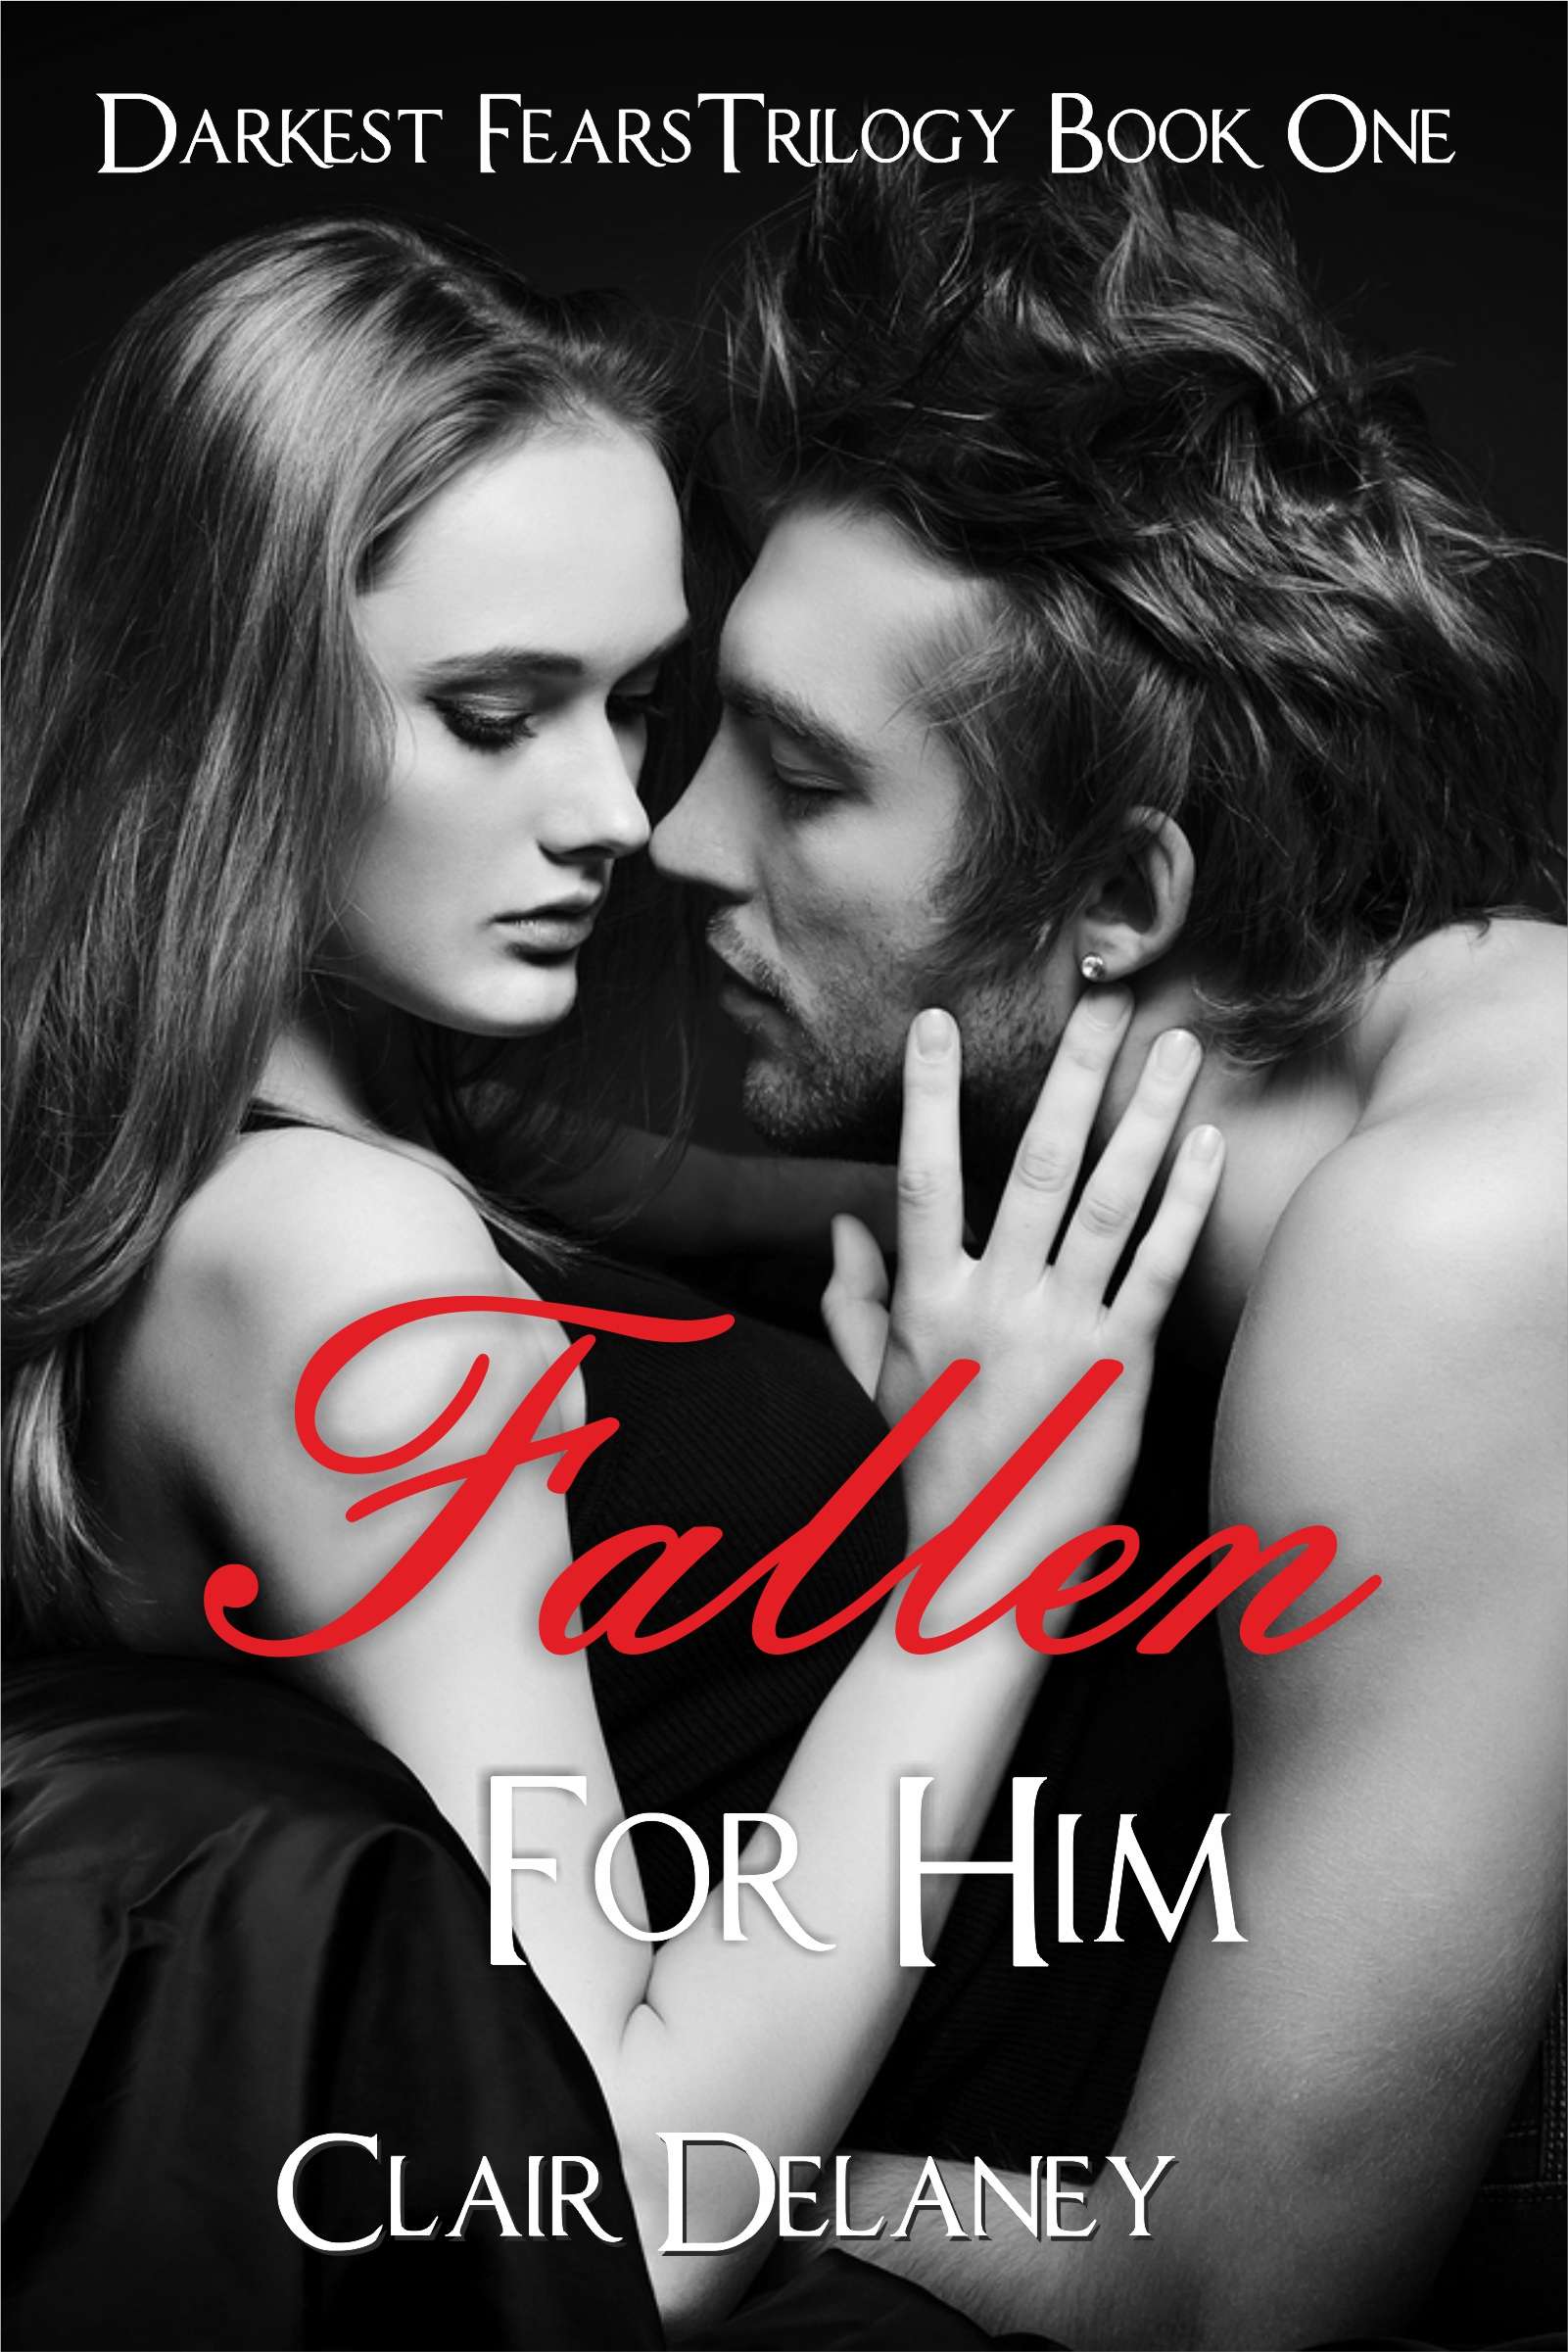 Fallen For Him – A Free Contemporary Romantic Erotic Drama (Darkest Fears Trilogy Book One) (sst-ccxxxi)